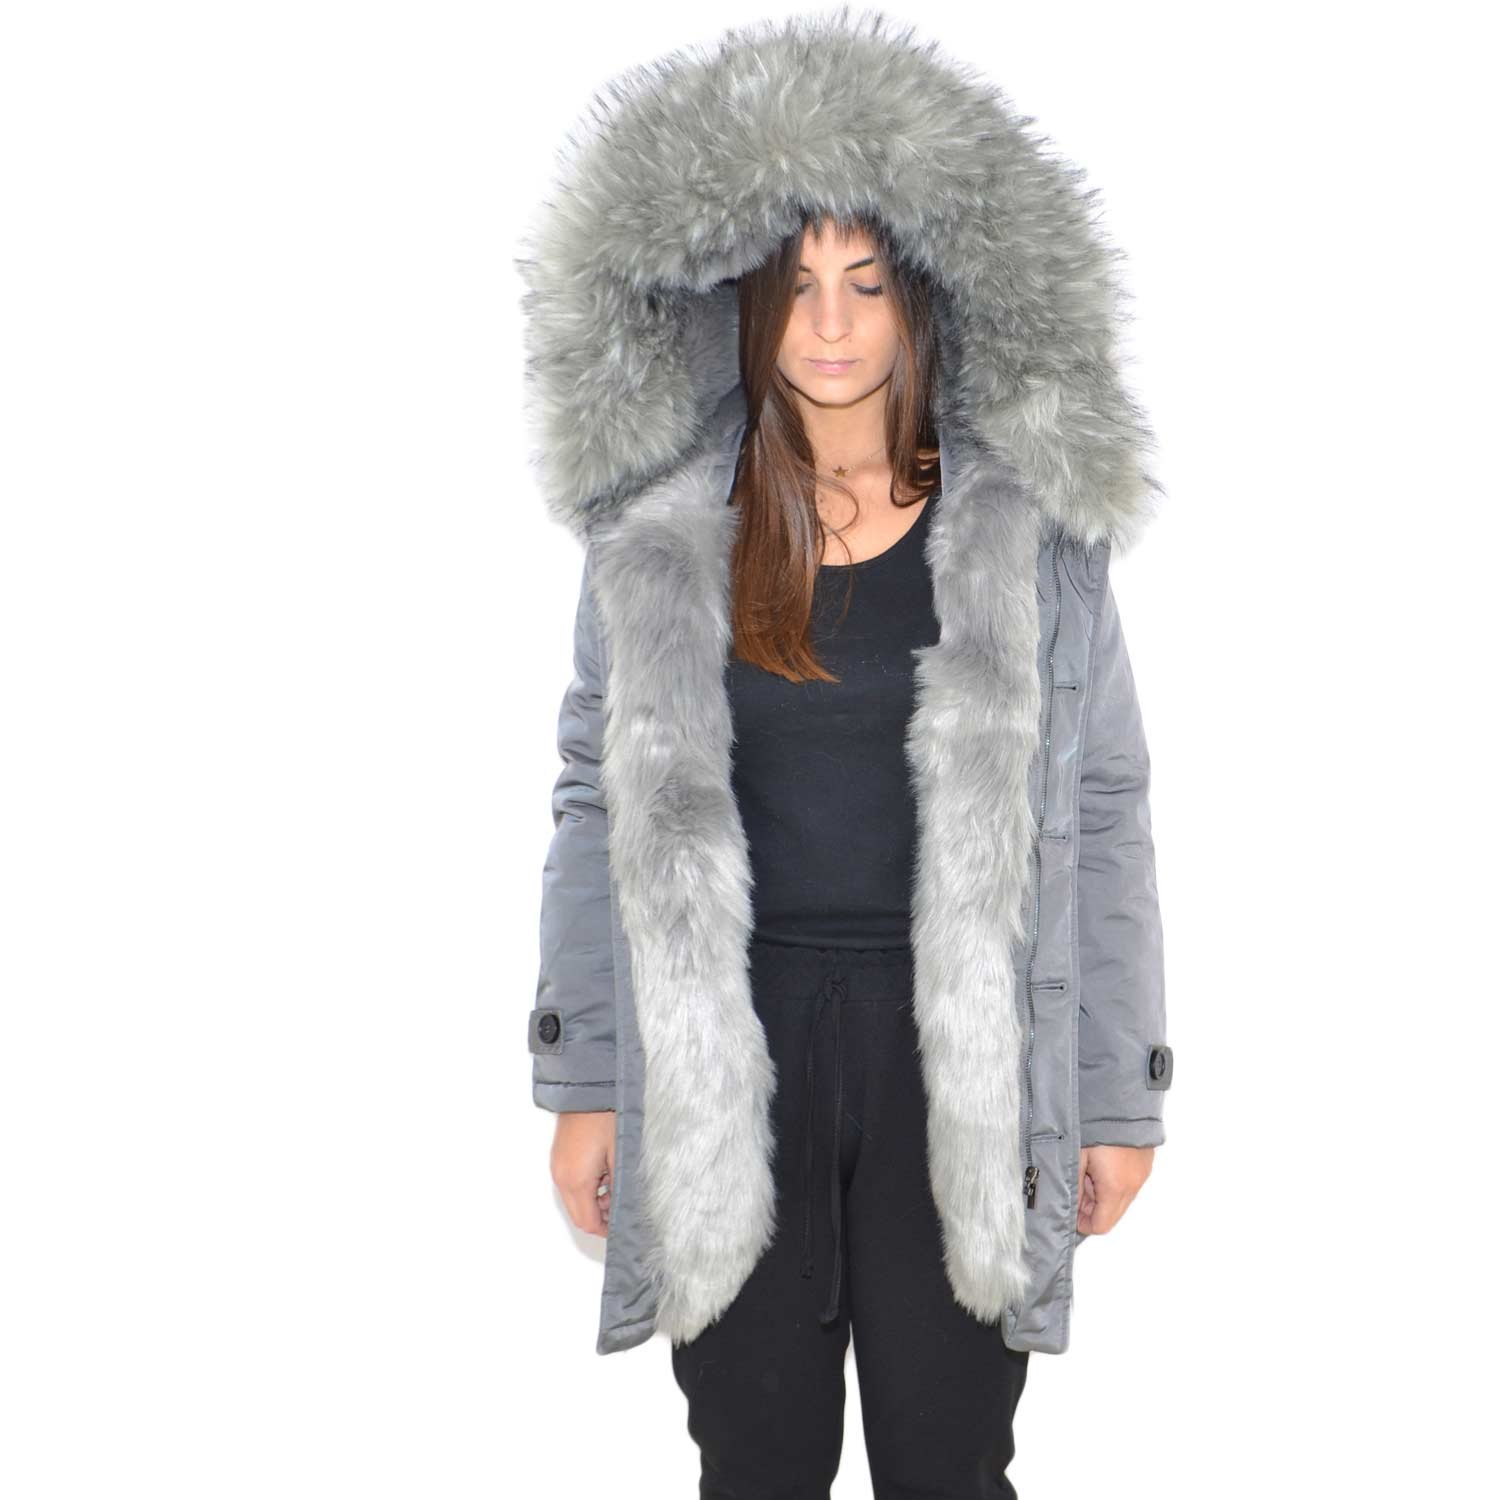 best loved 0d760 70090 Parka giacca donna invernale impermeabile grigio donna con pelliccia  voluminosa ecologica grigio glamour ecofur parka donna parka k-zell |  MaluShoes